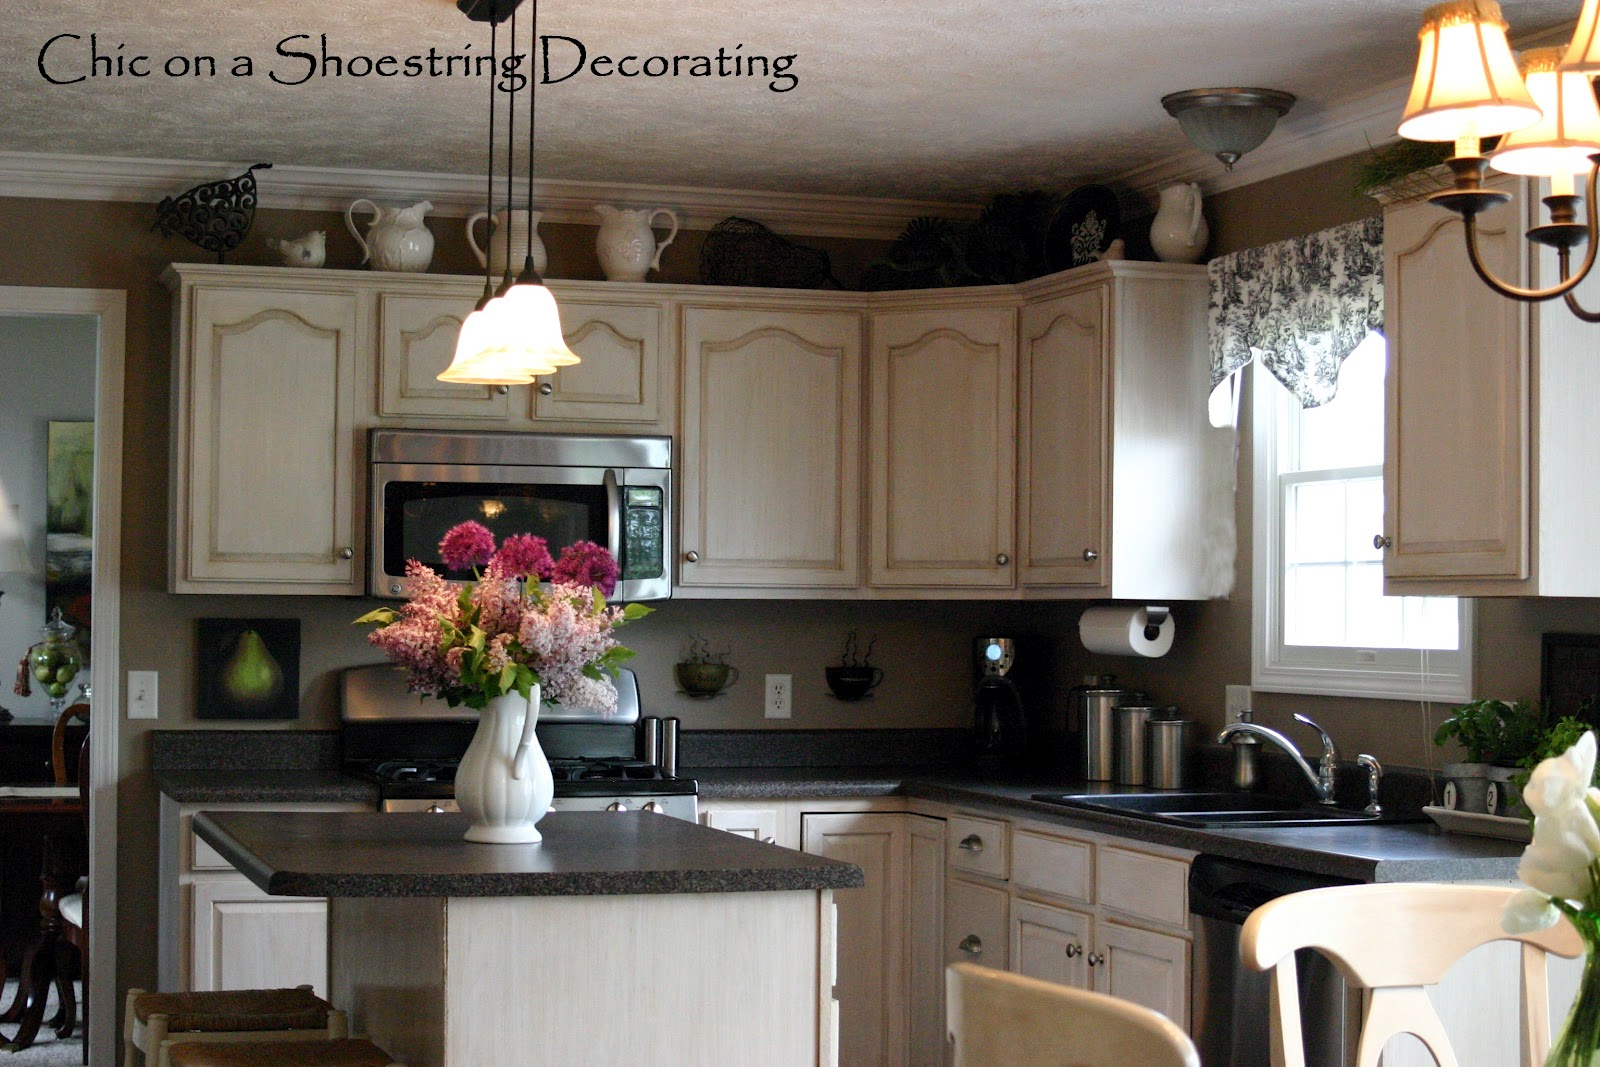 adorning top of How to Decorate Above Kitchen Decoration ? Ideas for Kitchen Cabinet Decorating Over cupboard interior design - Trendy Home - Top Of Kitchen Cabinet Decorations